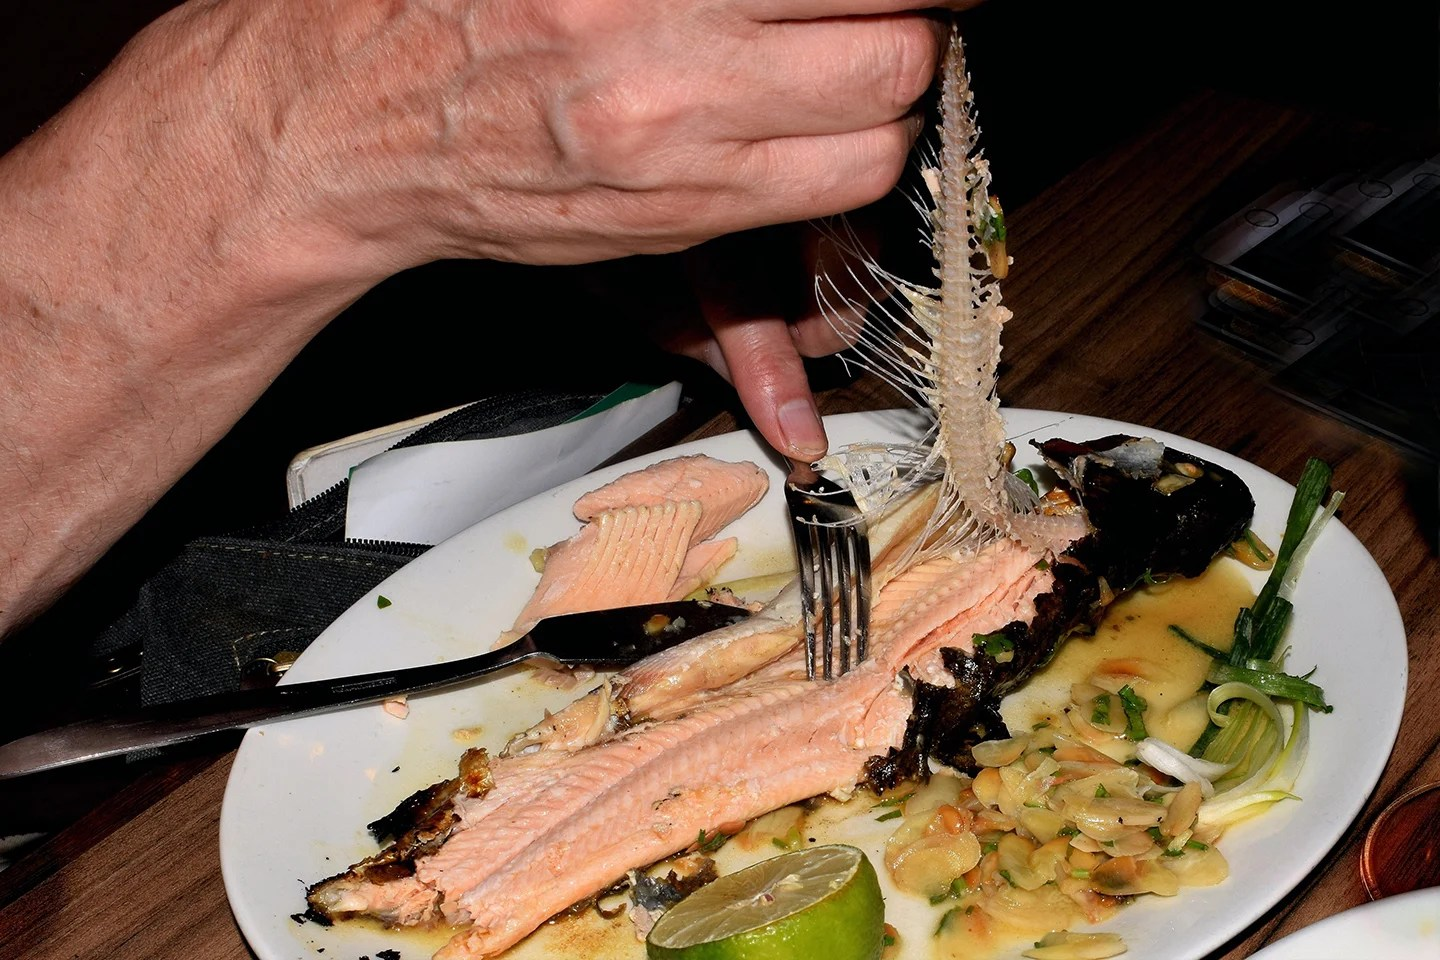 A man deboning a Trout by pulling the spine off the bottom half of the fish